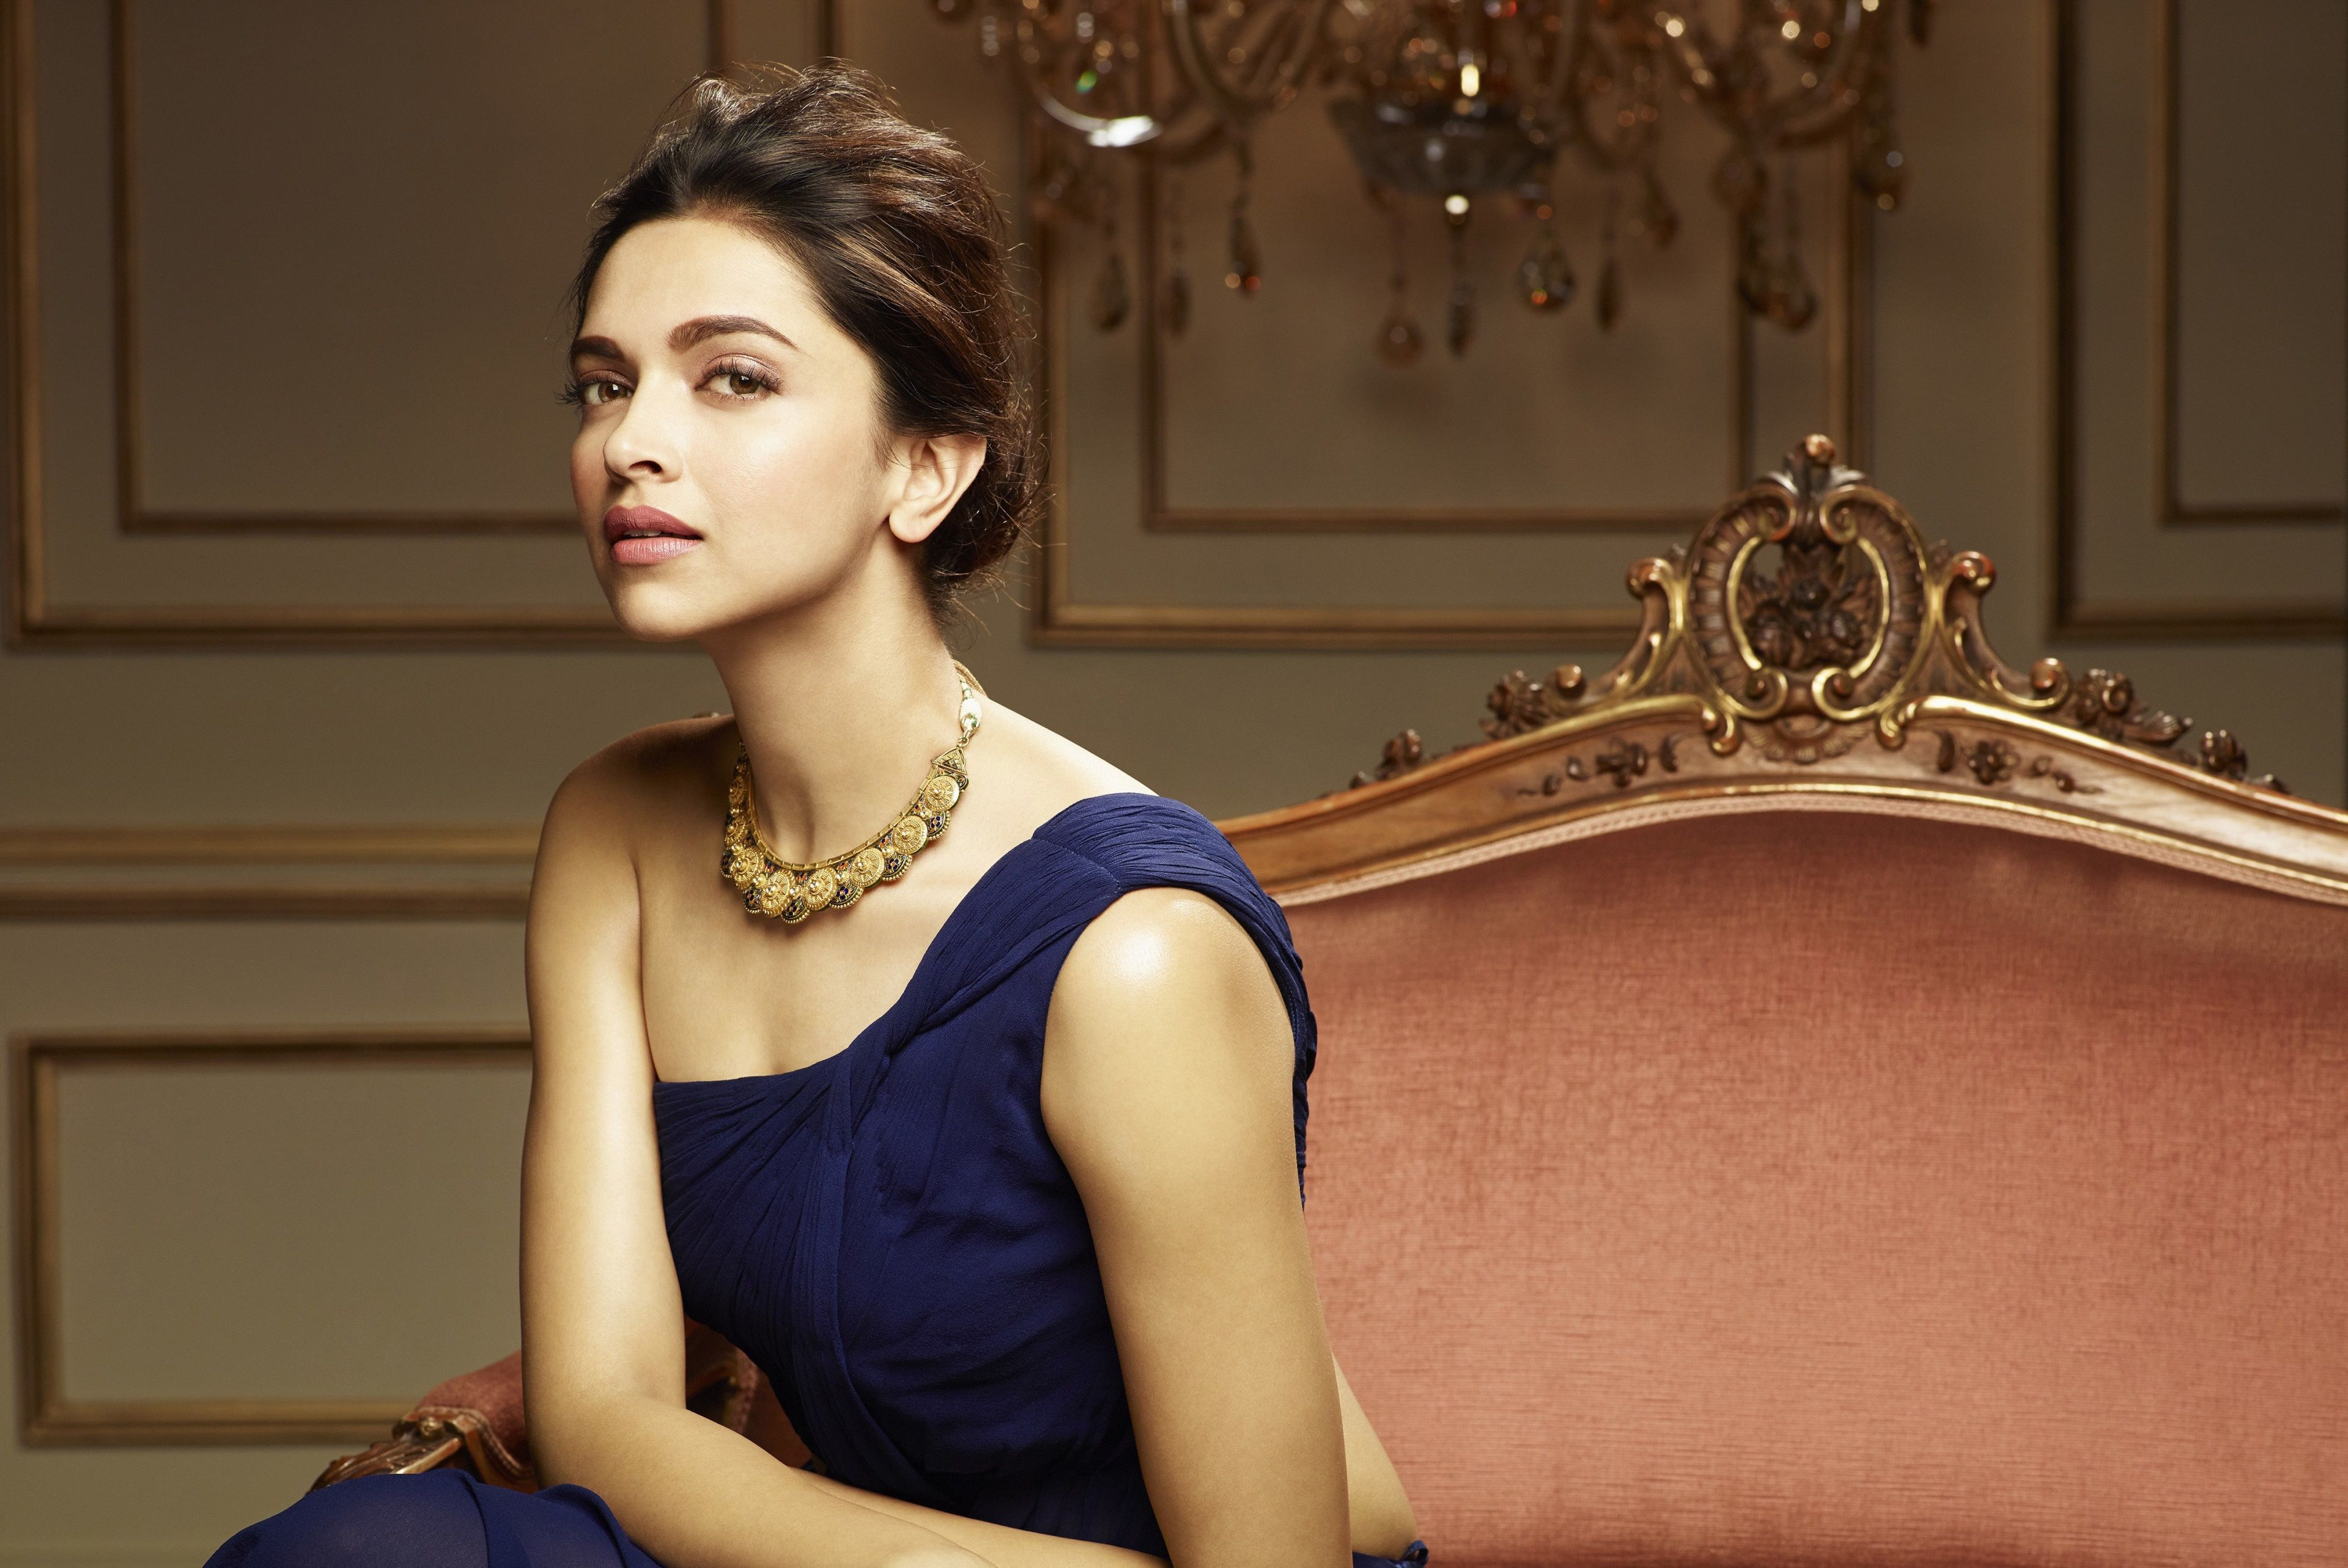 3840x2565 Deepika Padukone 4k Download Pictures For Pc Brunette Celebrities Celebrities Deepika Padukone Deepika padukone hd wallpaper for pc